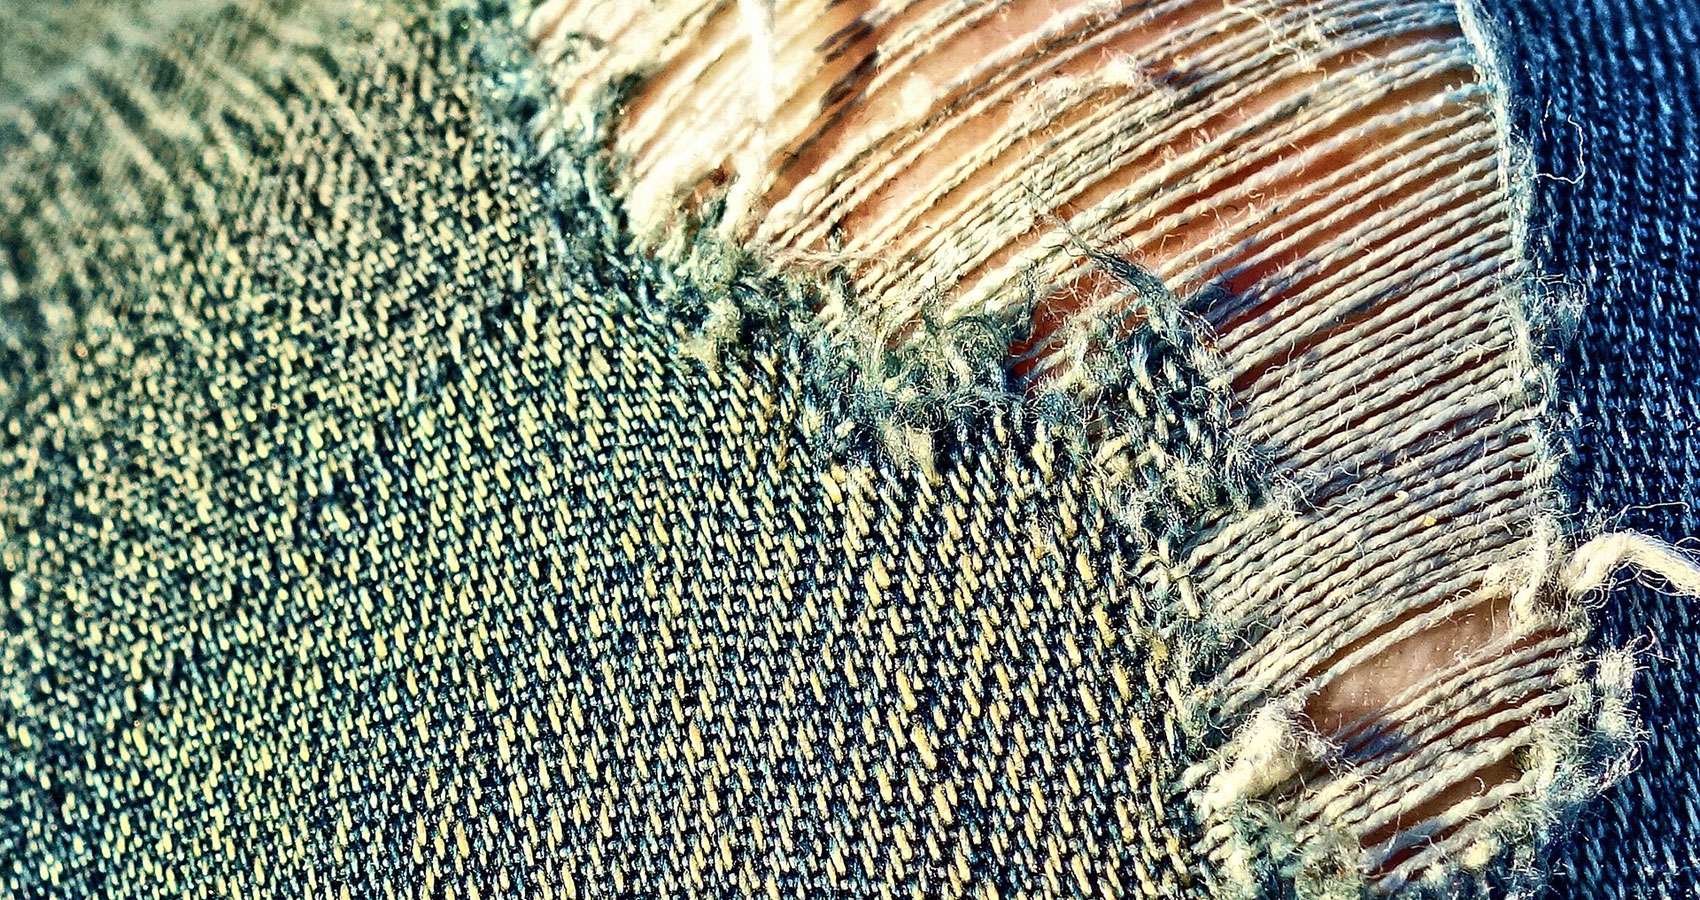 DISTRESSED DENIMS, written by Dilip Mohapatra at Spillwords.com